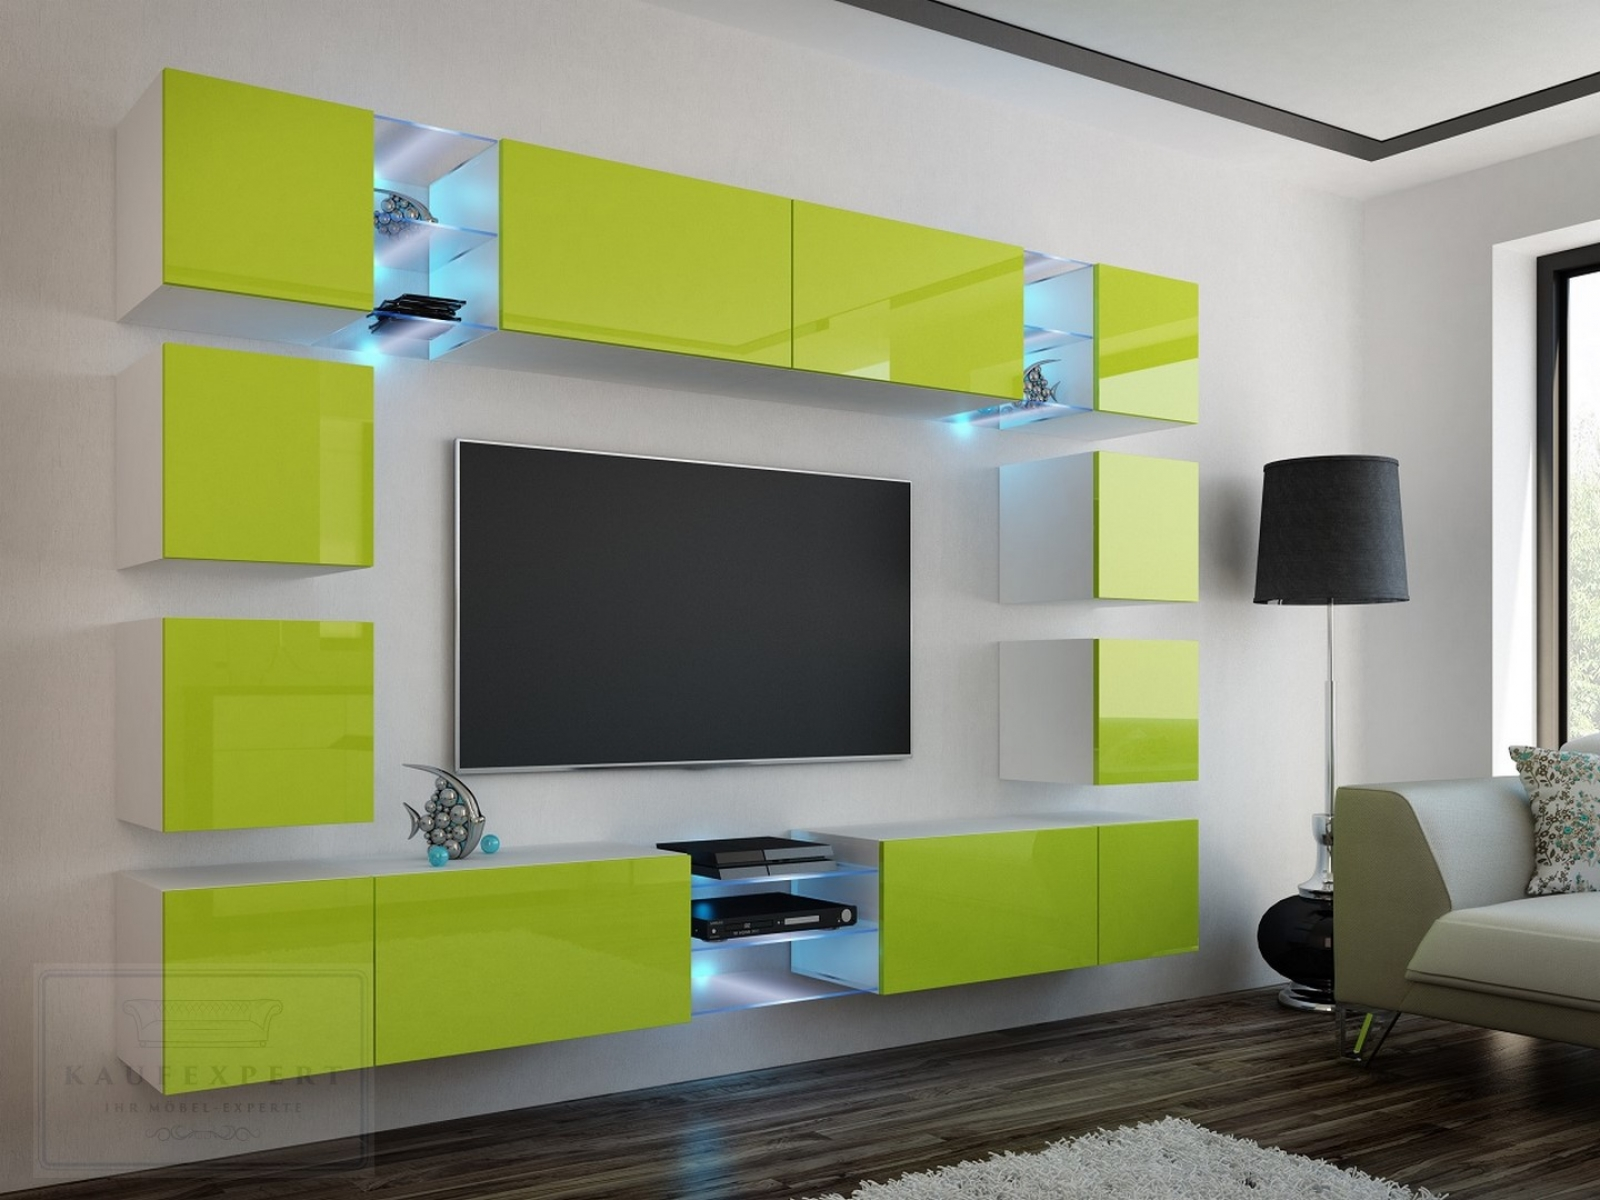 kaufexpert wohnwand edge lime hochglanz wei mediawand medienwand design modern led. Black Bedroom Furniture Sets. Home Design Ideas